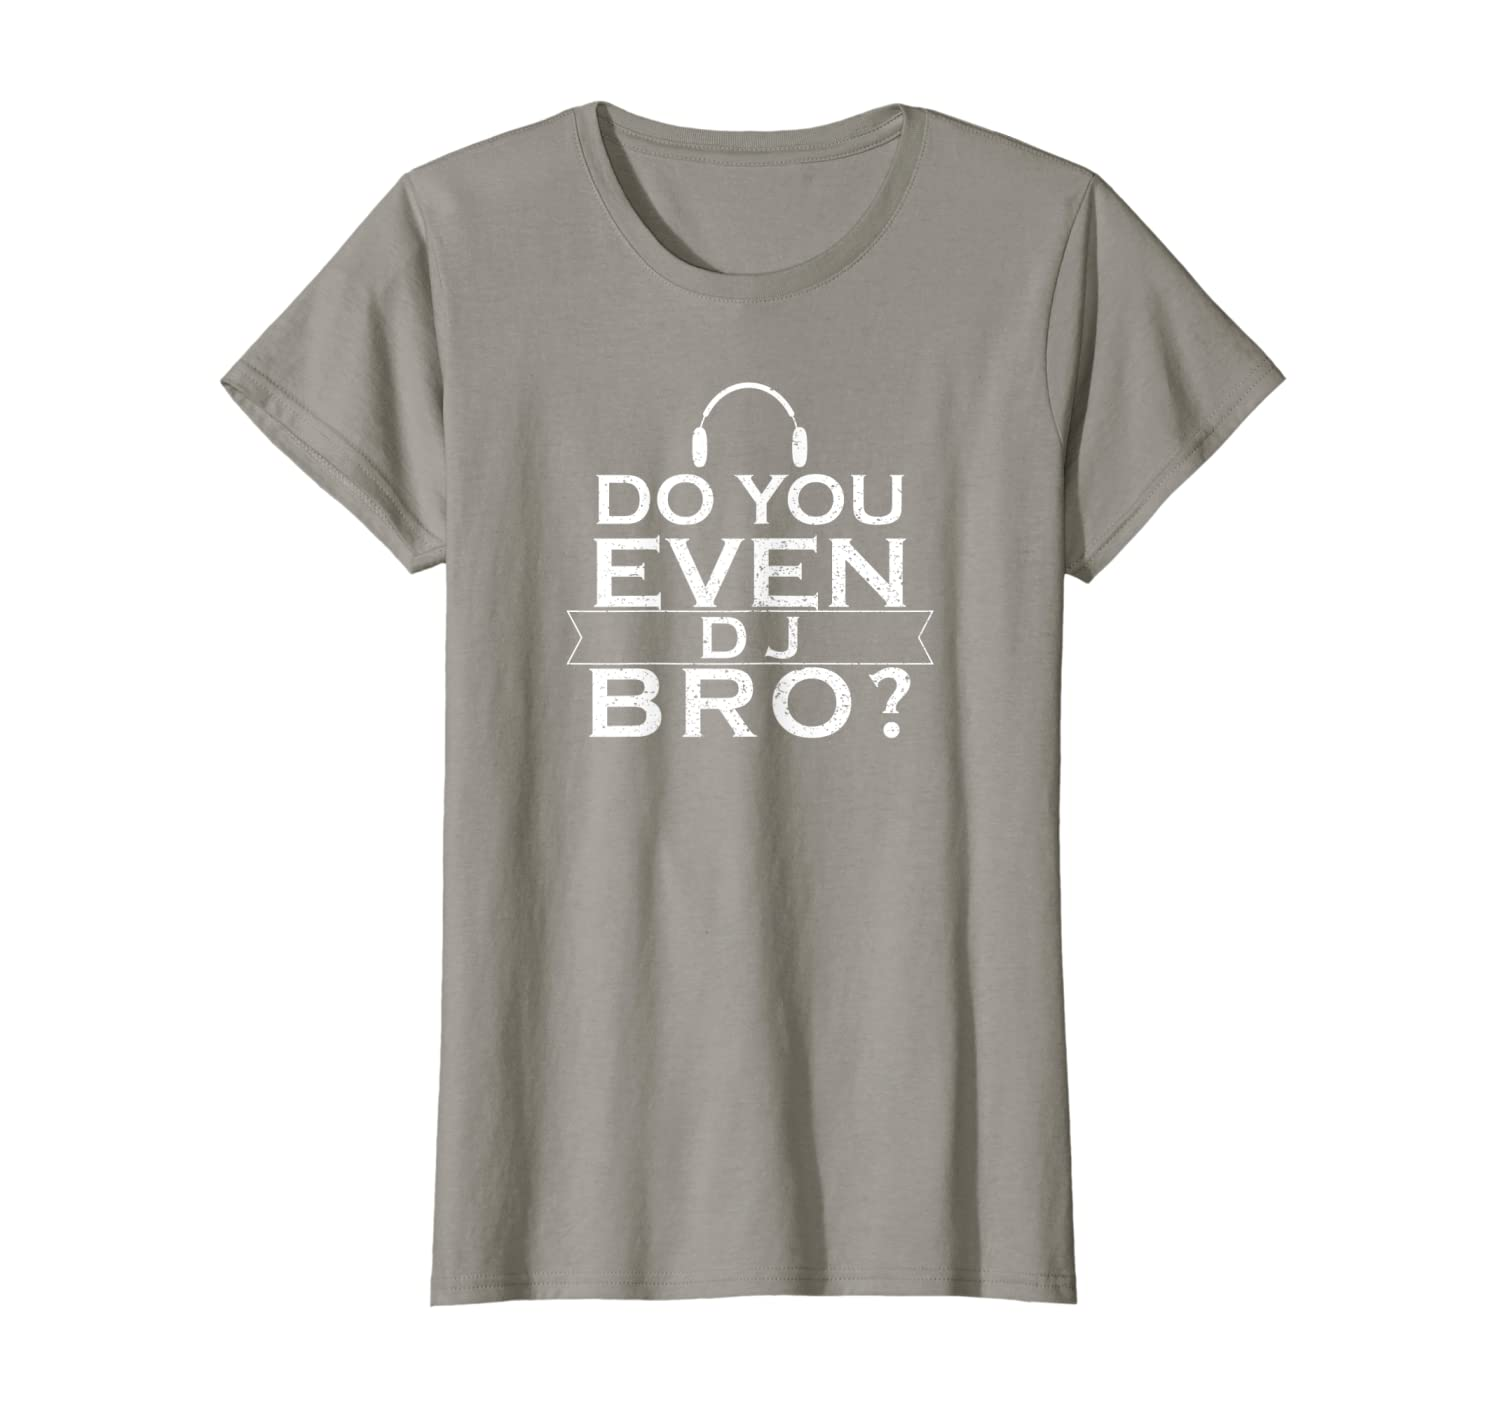 e8d8b04f7c Amazon.com: Do You Even DJ Bro? Funny Music Shirt: Clothing